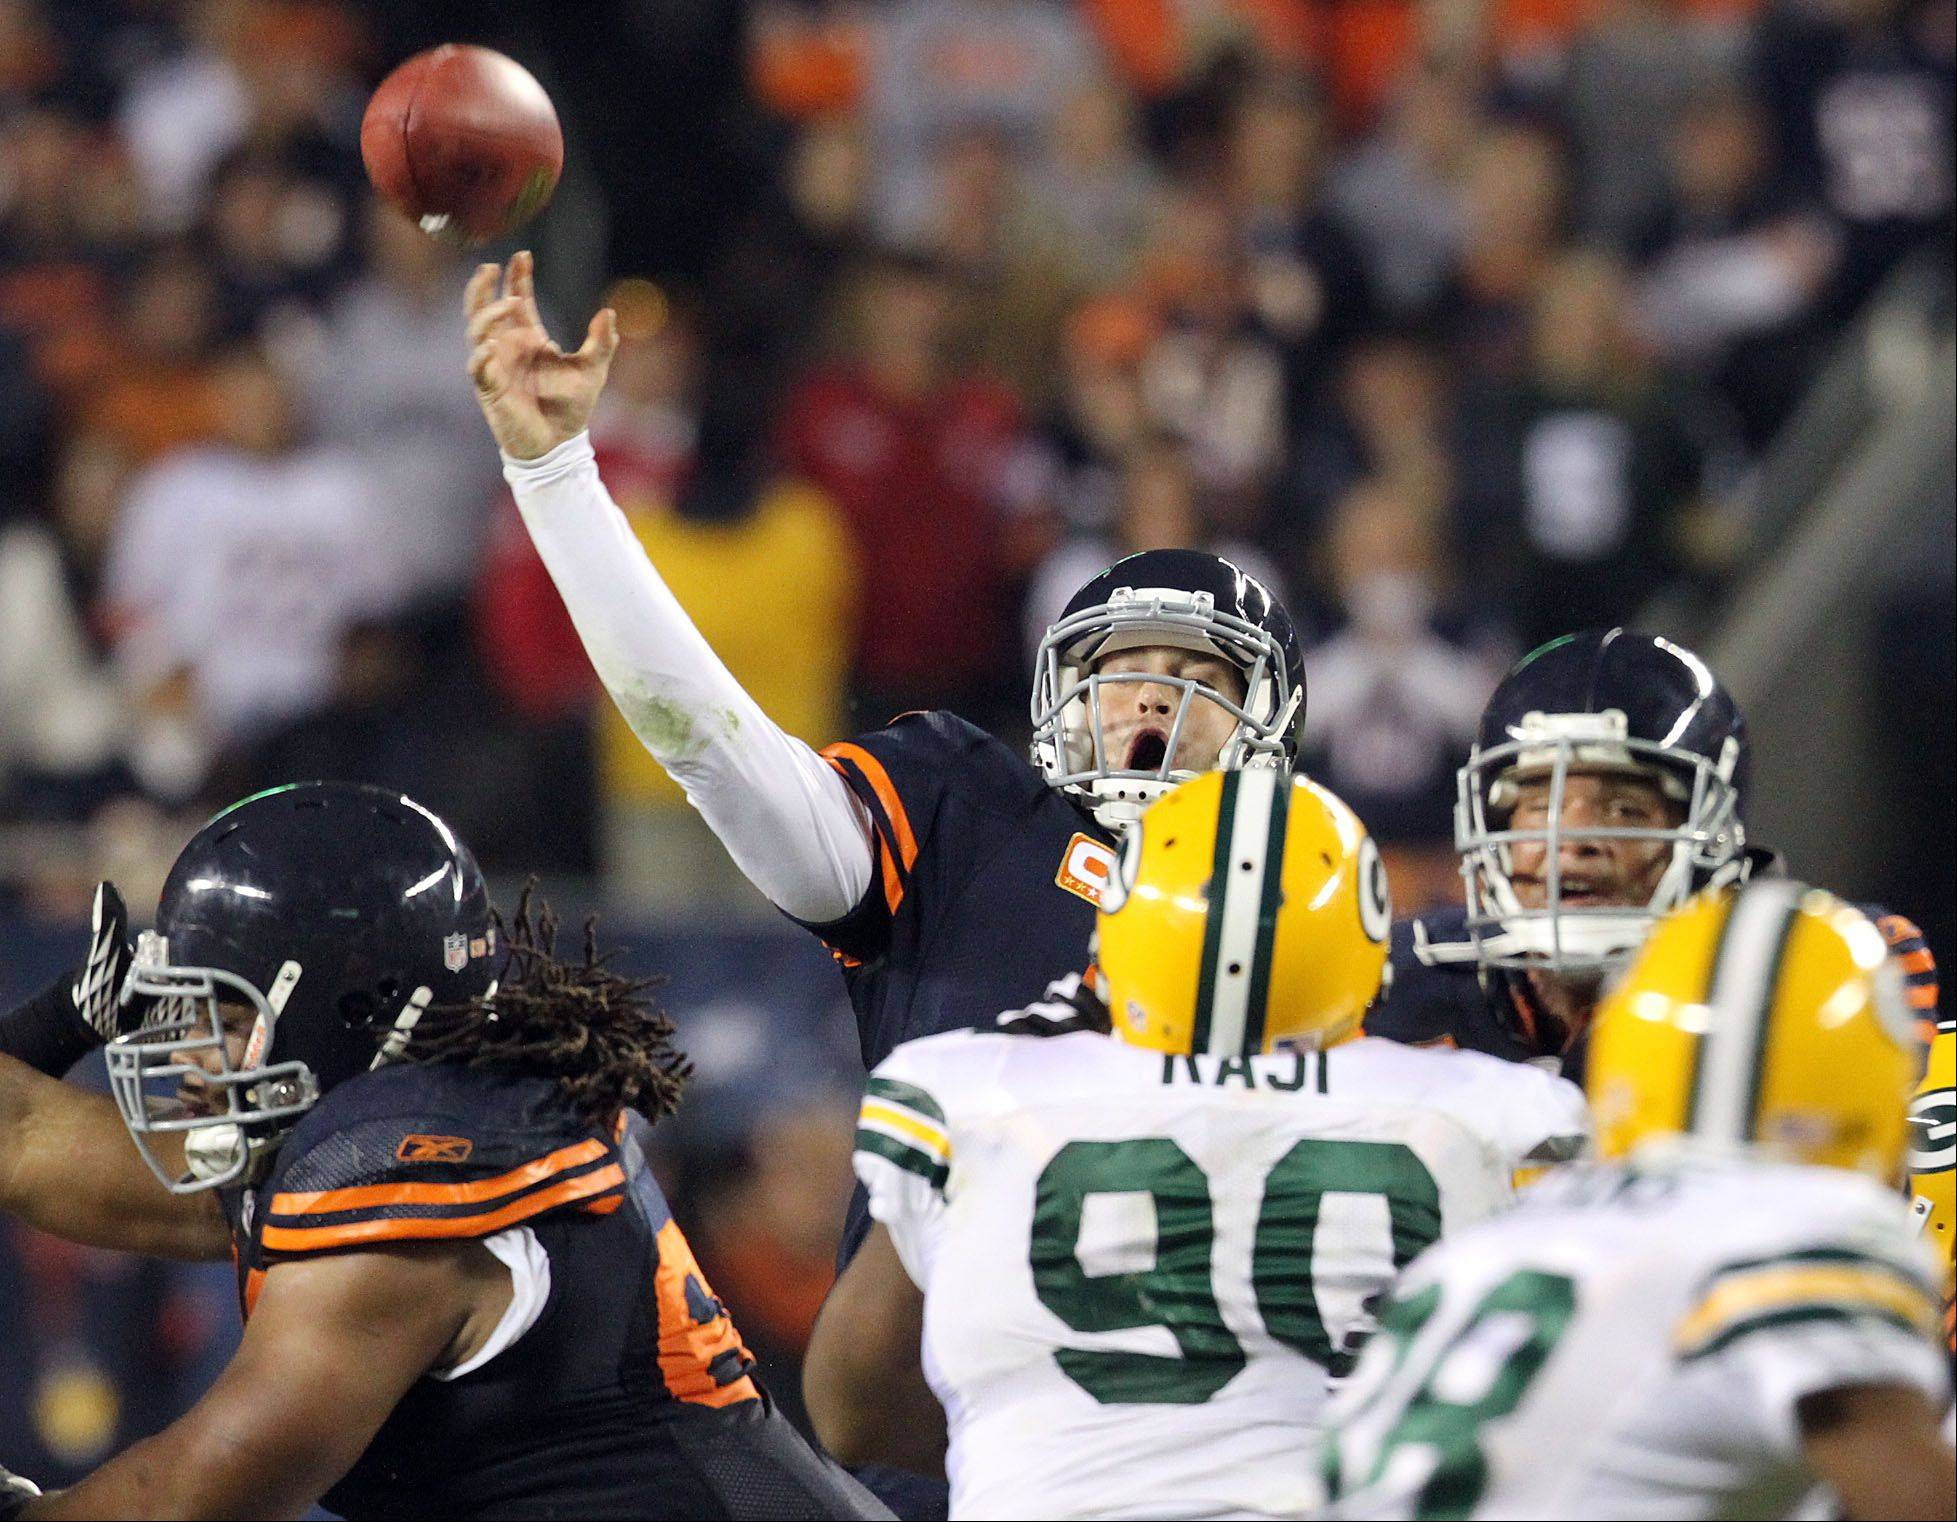 Since arriving in Chicago, Jay Cutler has thrown just 8 TD passes with 15 interceptions in seven starts against the Packers.